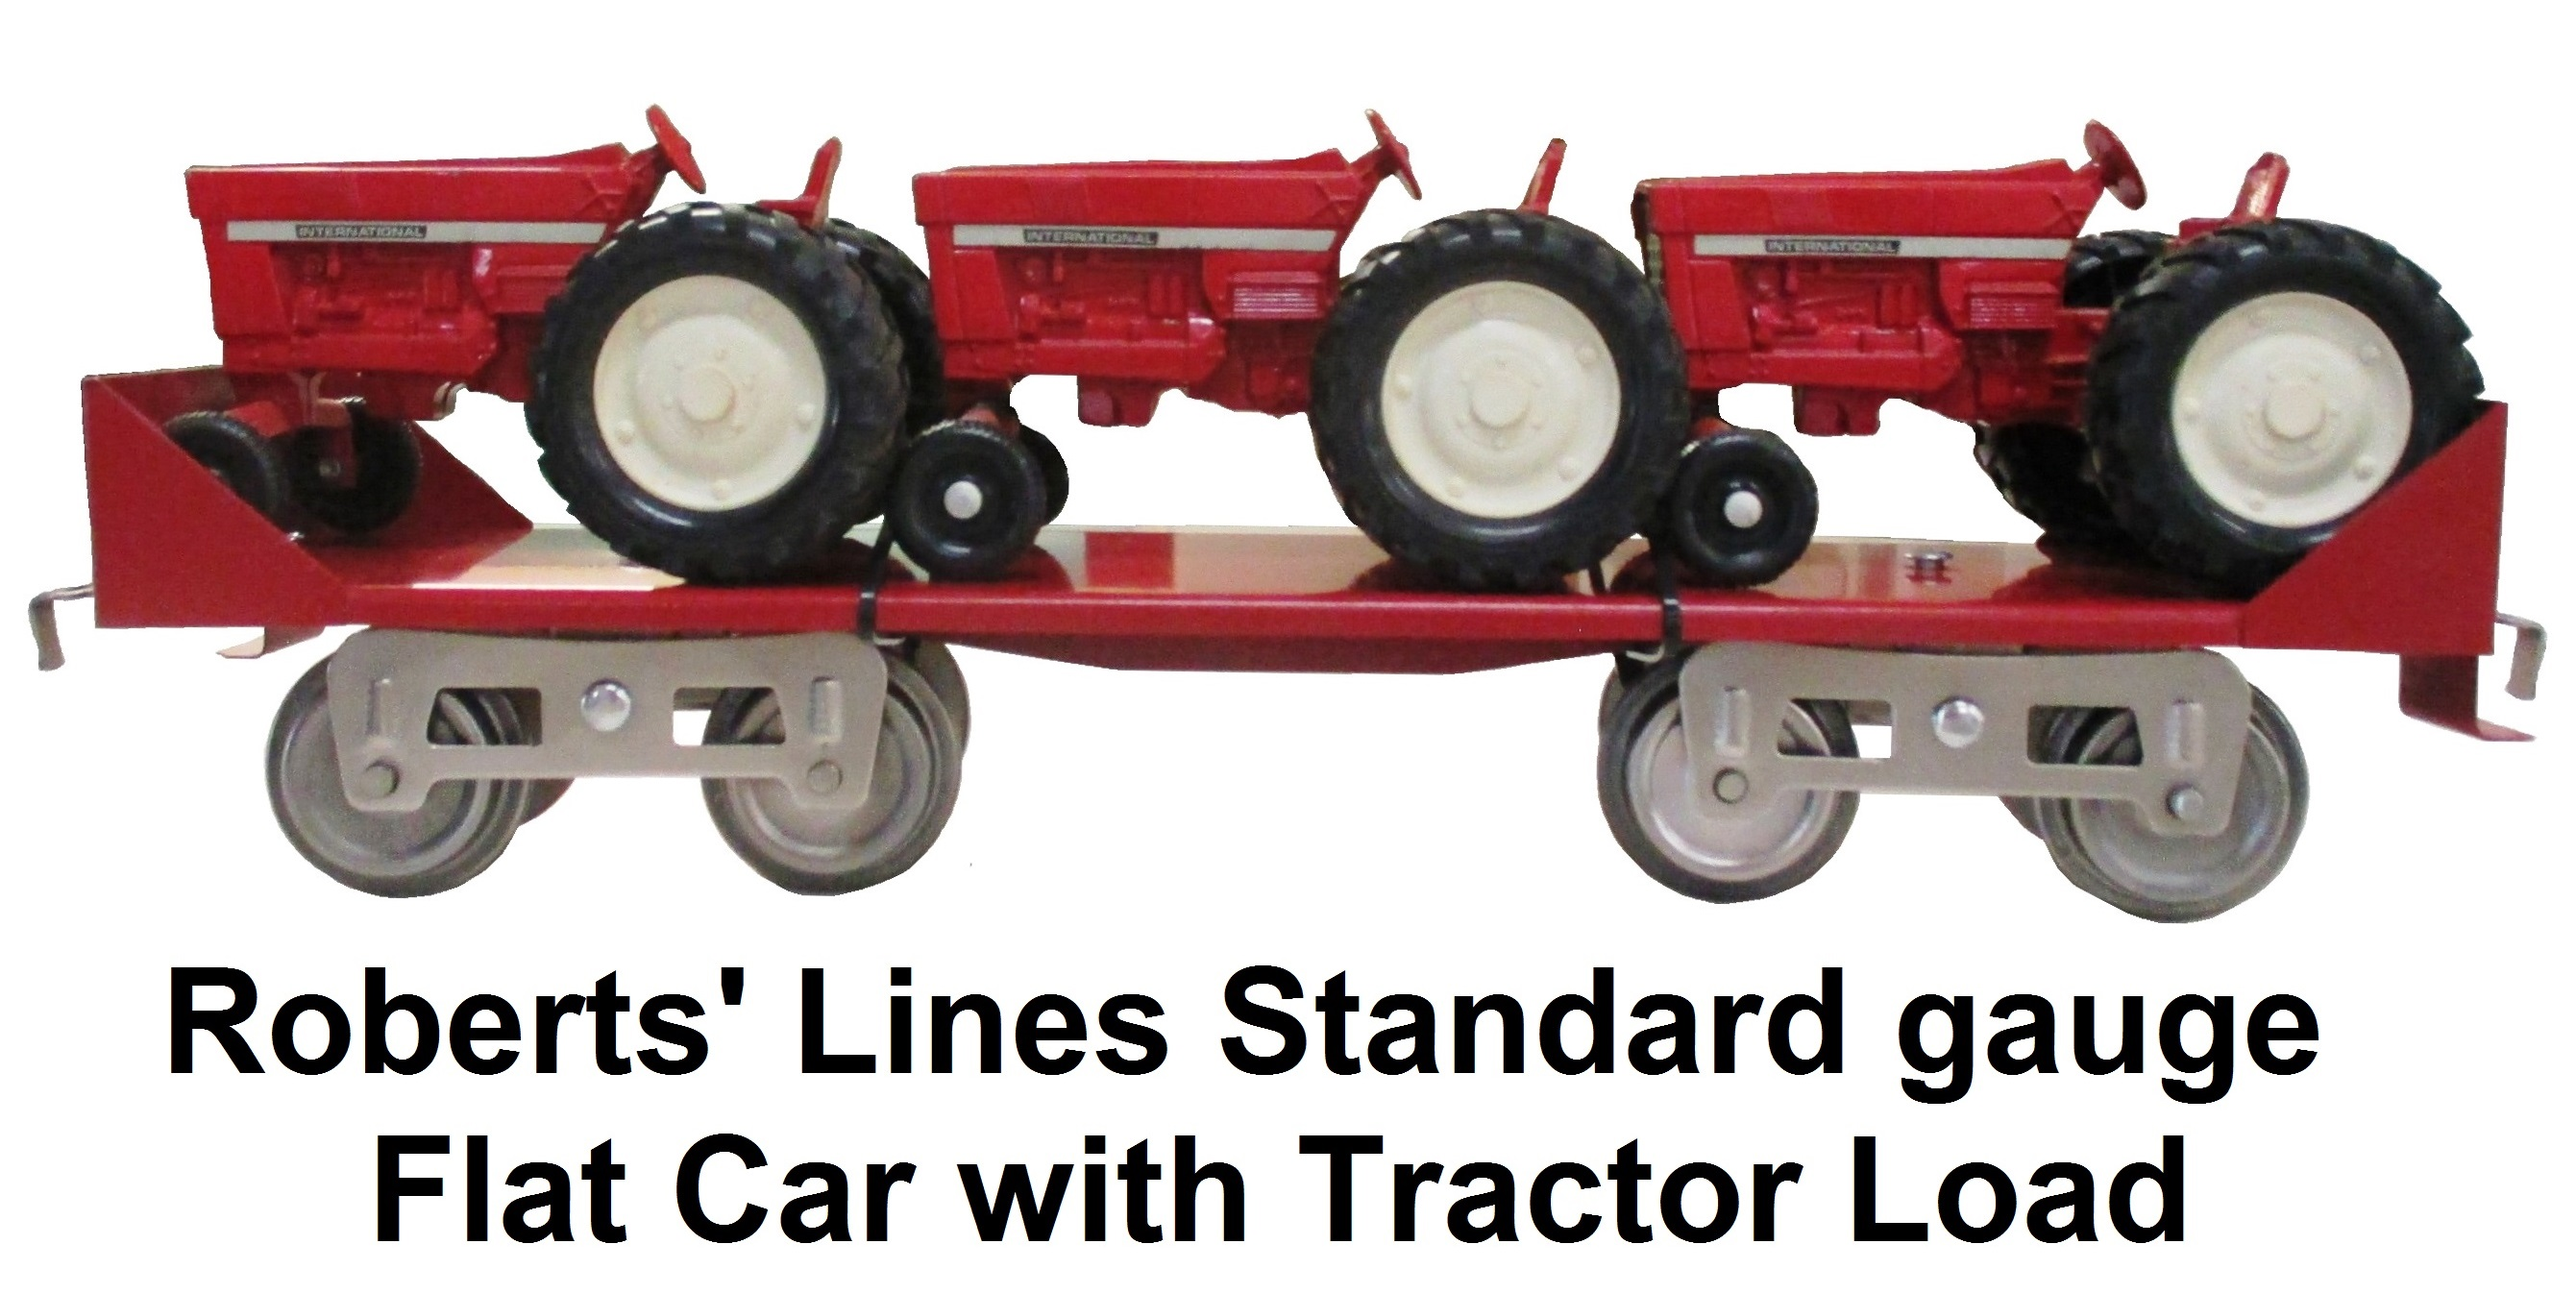 Roberts' Lines Standard gauge Custom Painted Flat car with Tractor Load